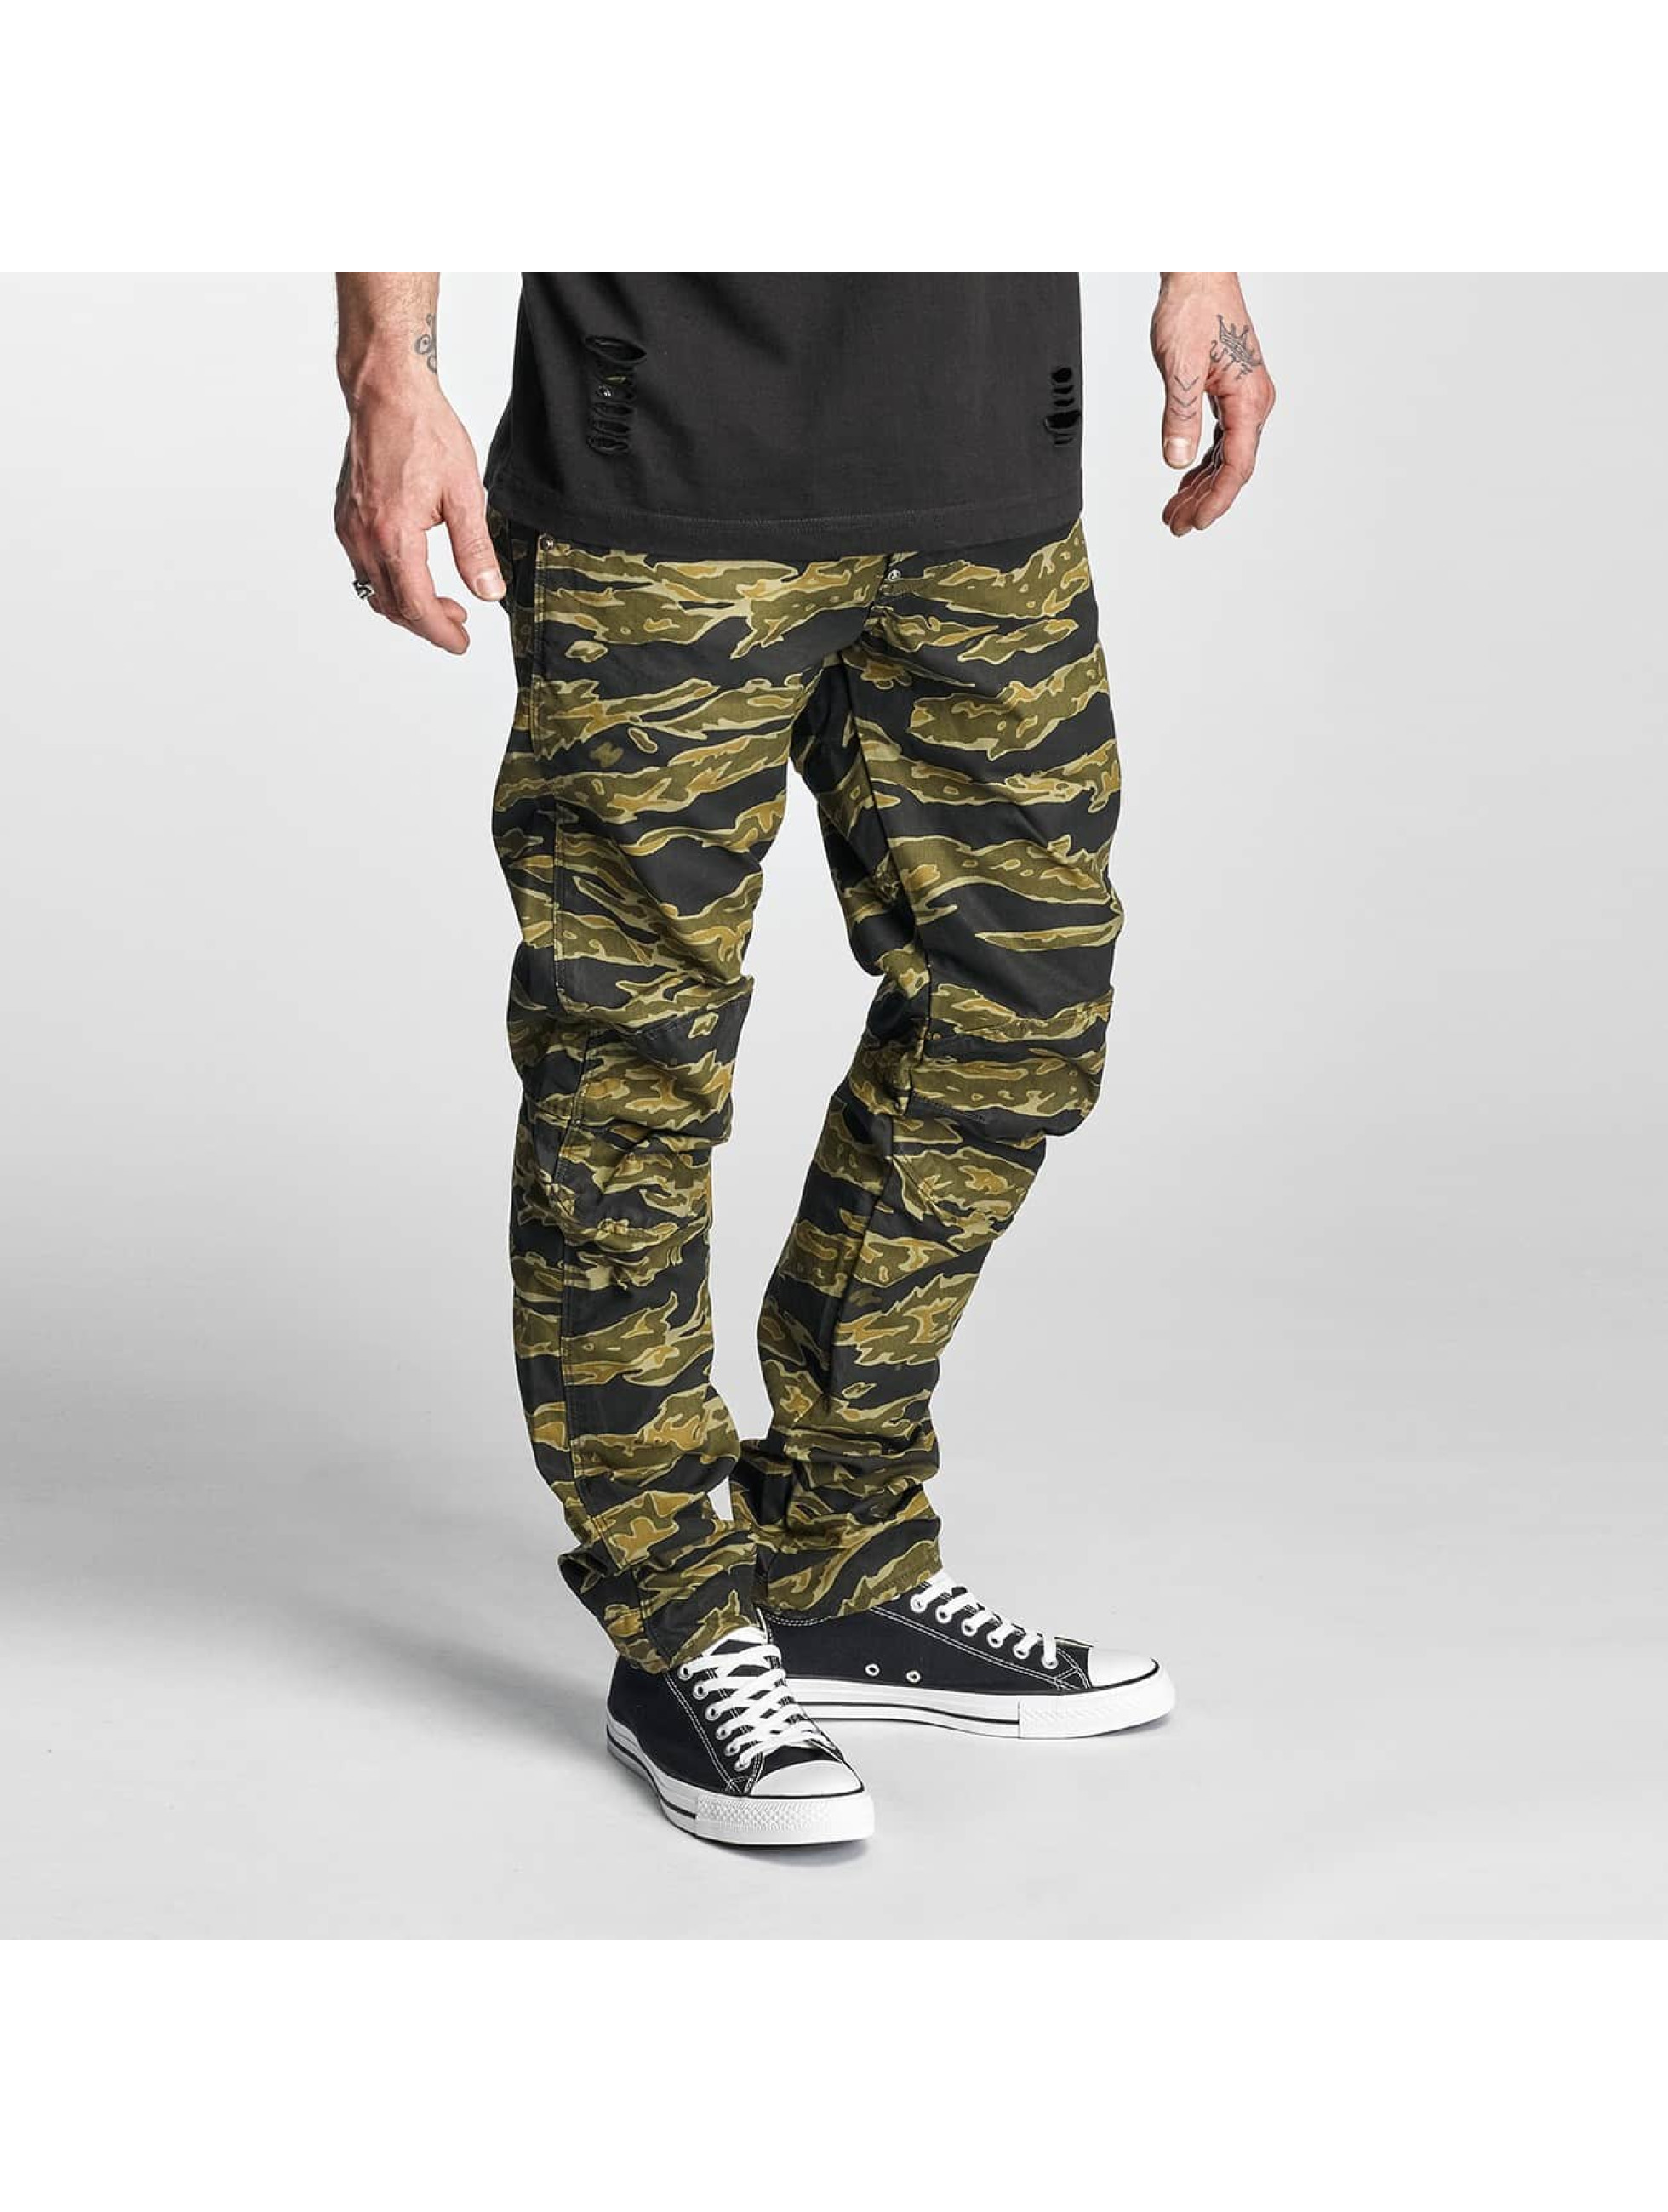 g star jeans antifit 5622 3d tapered lucas canvas woodland camo in camouflage 310072. Black Bedroom Furniture Sets. Home Design Ideas